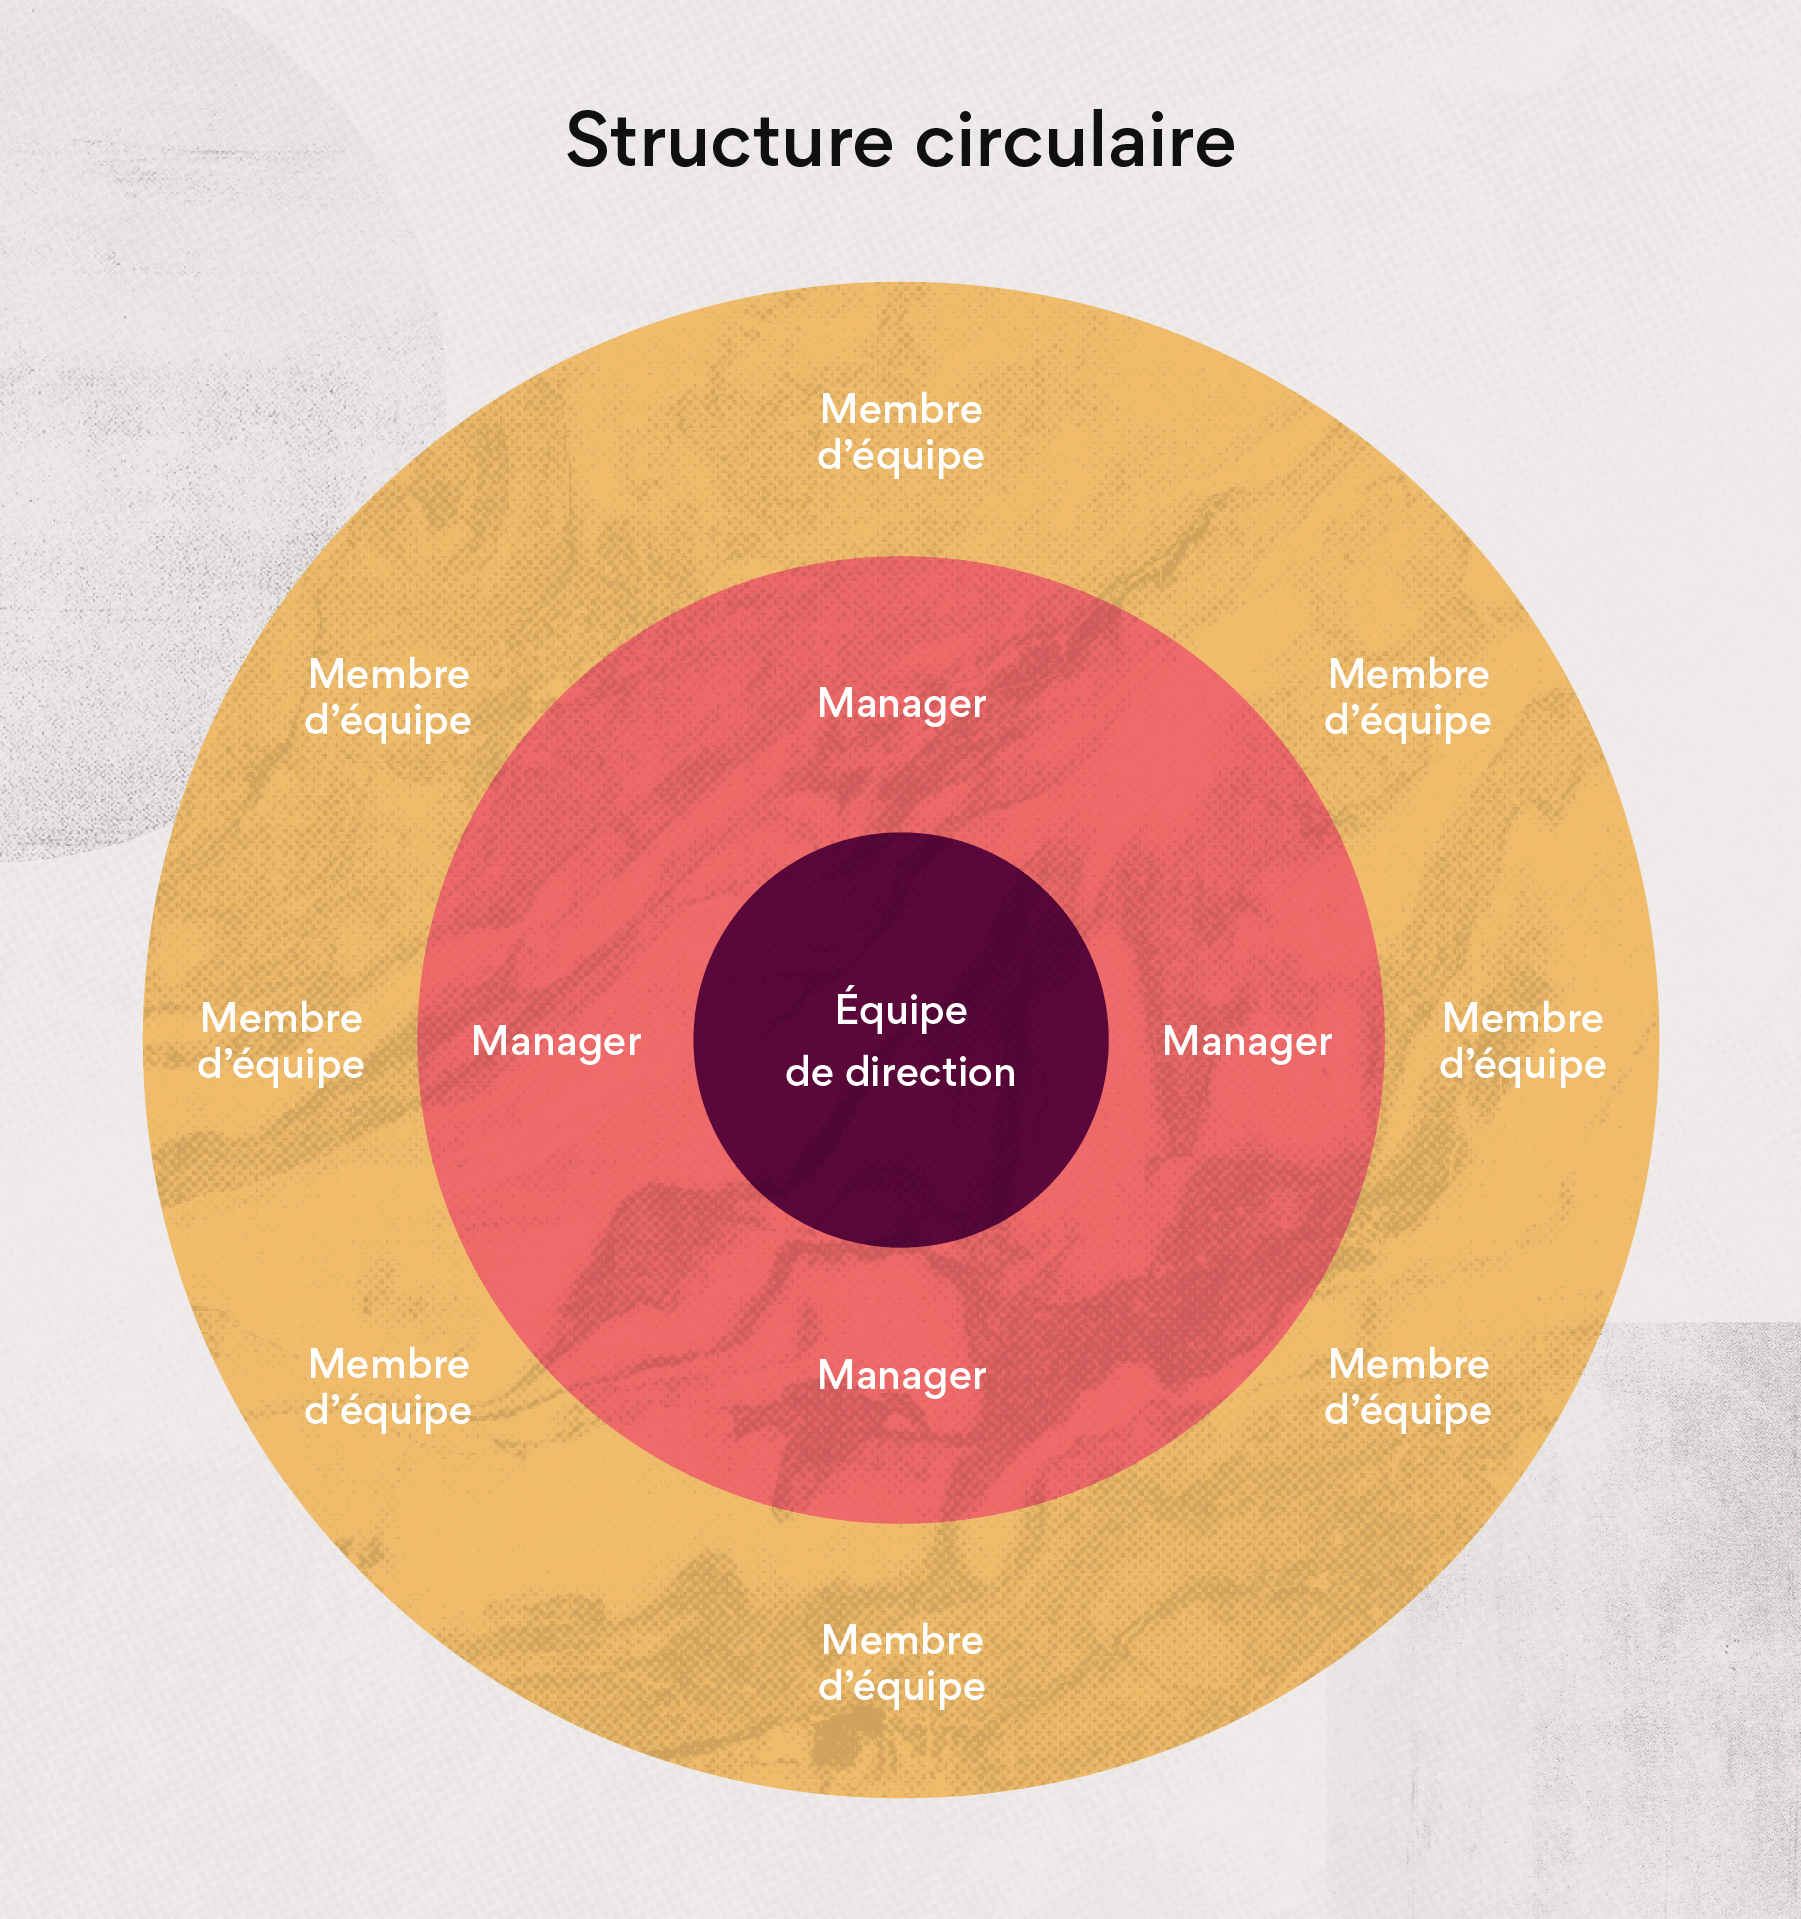 Structure circulaire